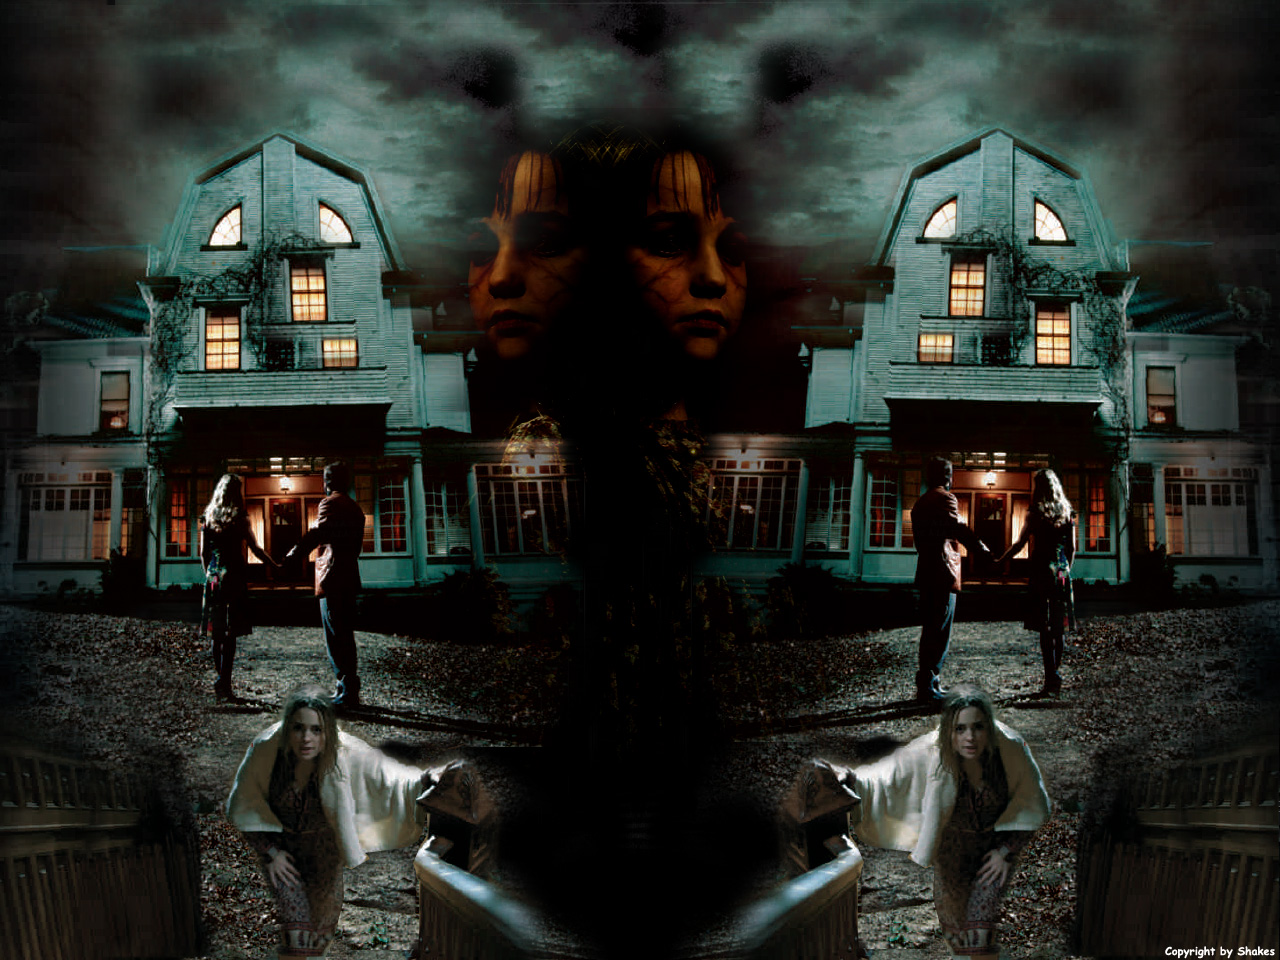 Wallpaper amityville la maison du diable cinema fond d for Amityville la maison du diable